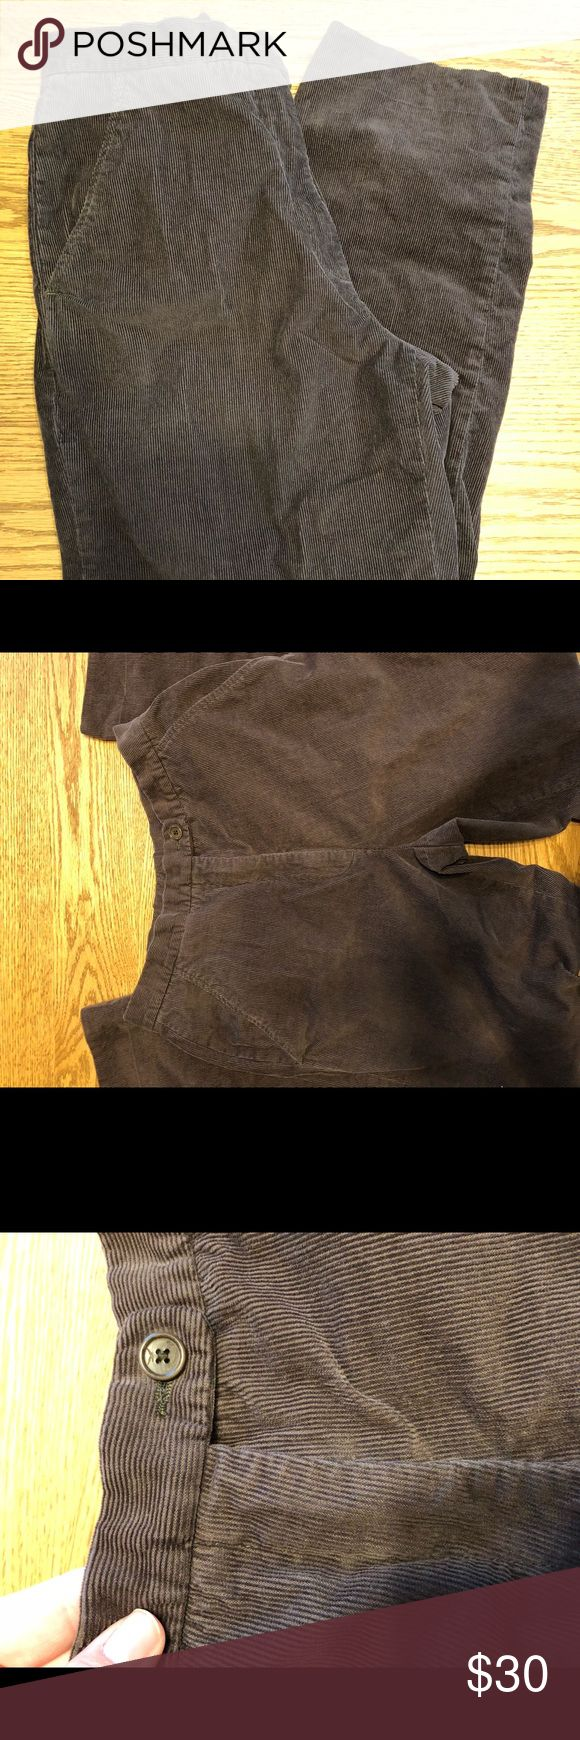 Faconnable Brown Slacks Size 6 Faconnable, brown pants, size 6. Great condition! faconnable Pants Straight Leg